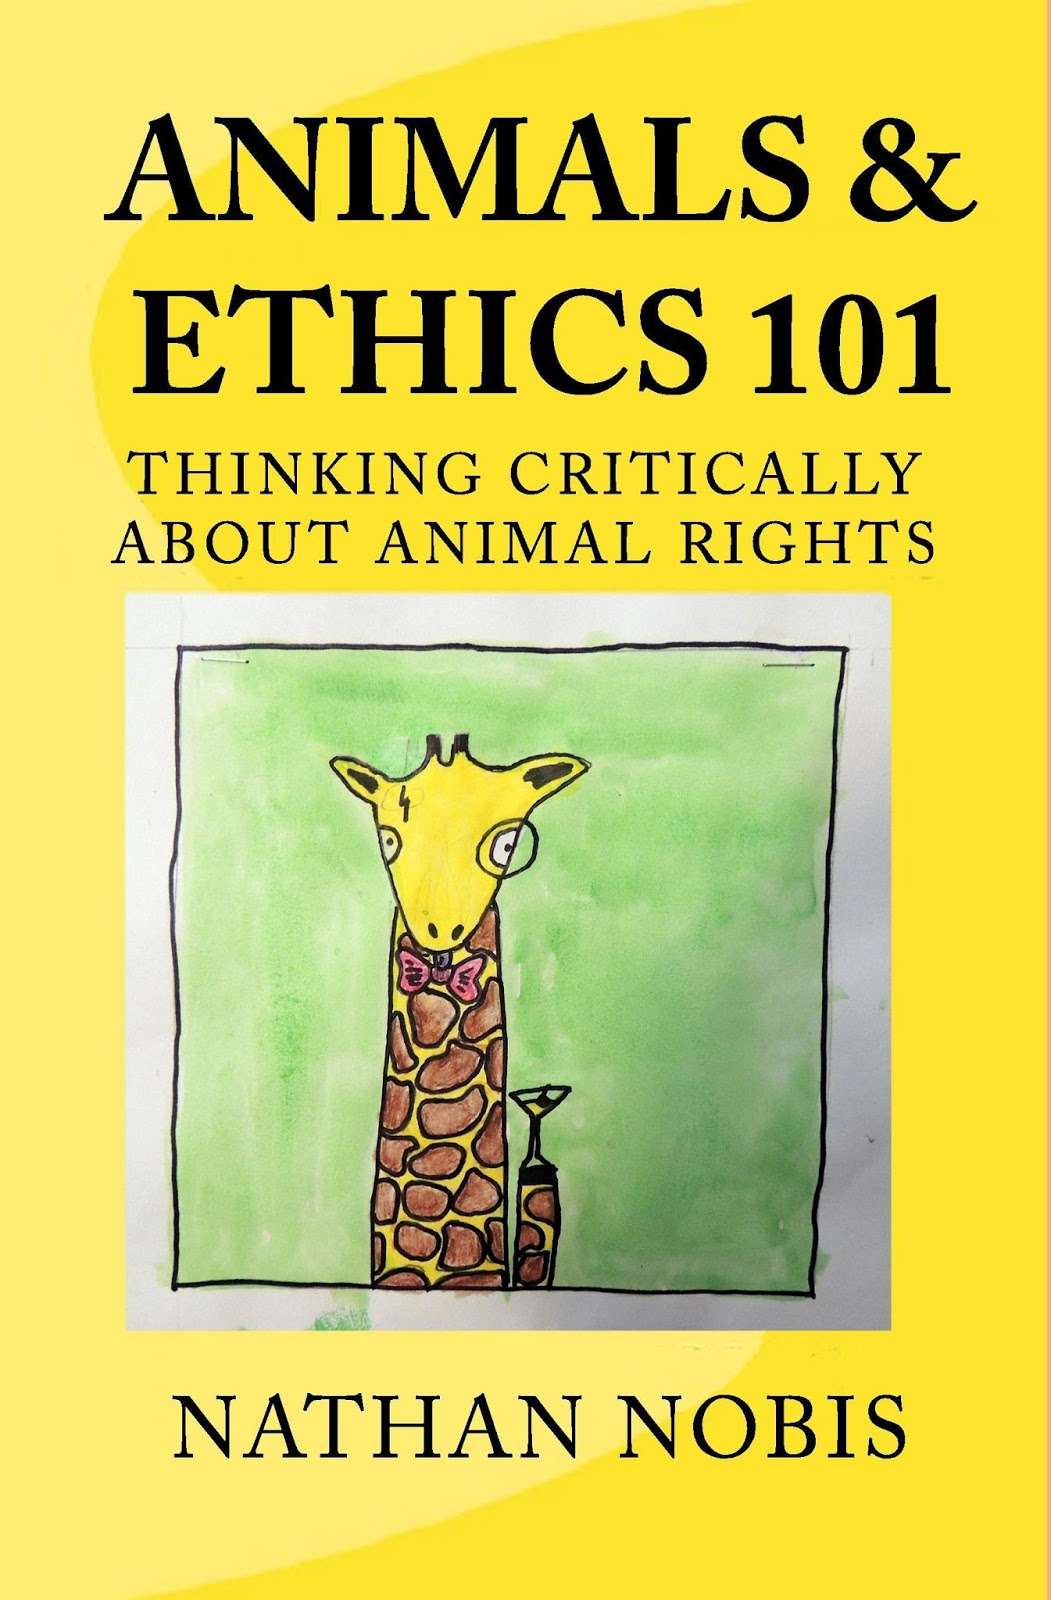 ethics 101 final Quiz #1 will cover sophie's world, the garden of eden, to socrates and classic philosophical questions, parts 1 and 3 you must answer 20 from 25 questions selected from the following: what were the questions in the first two envelopes sophie found.